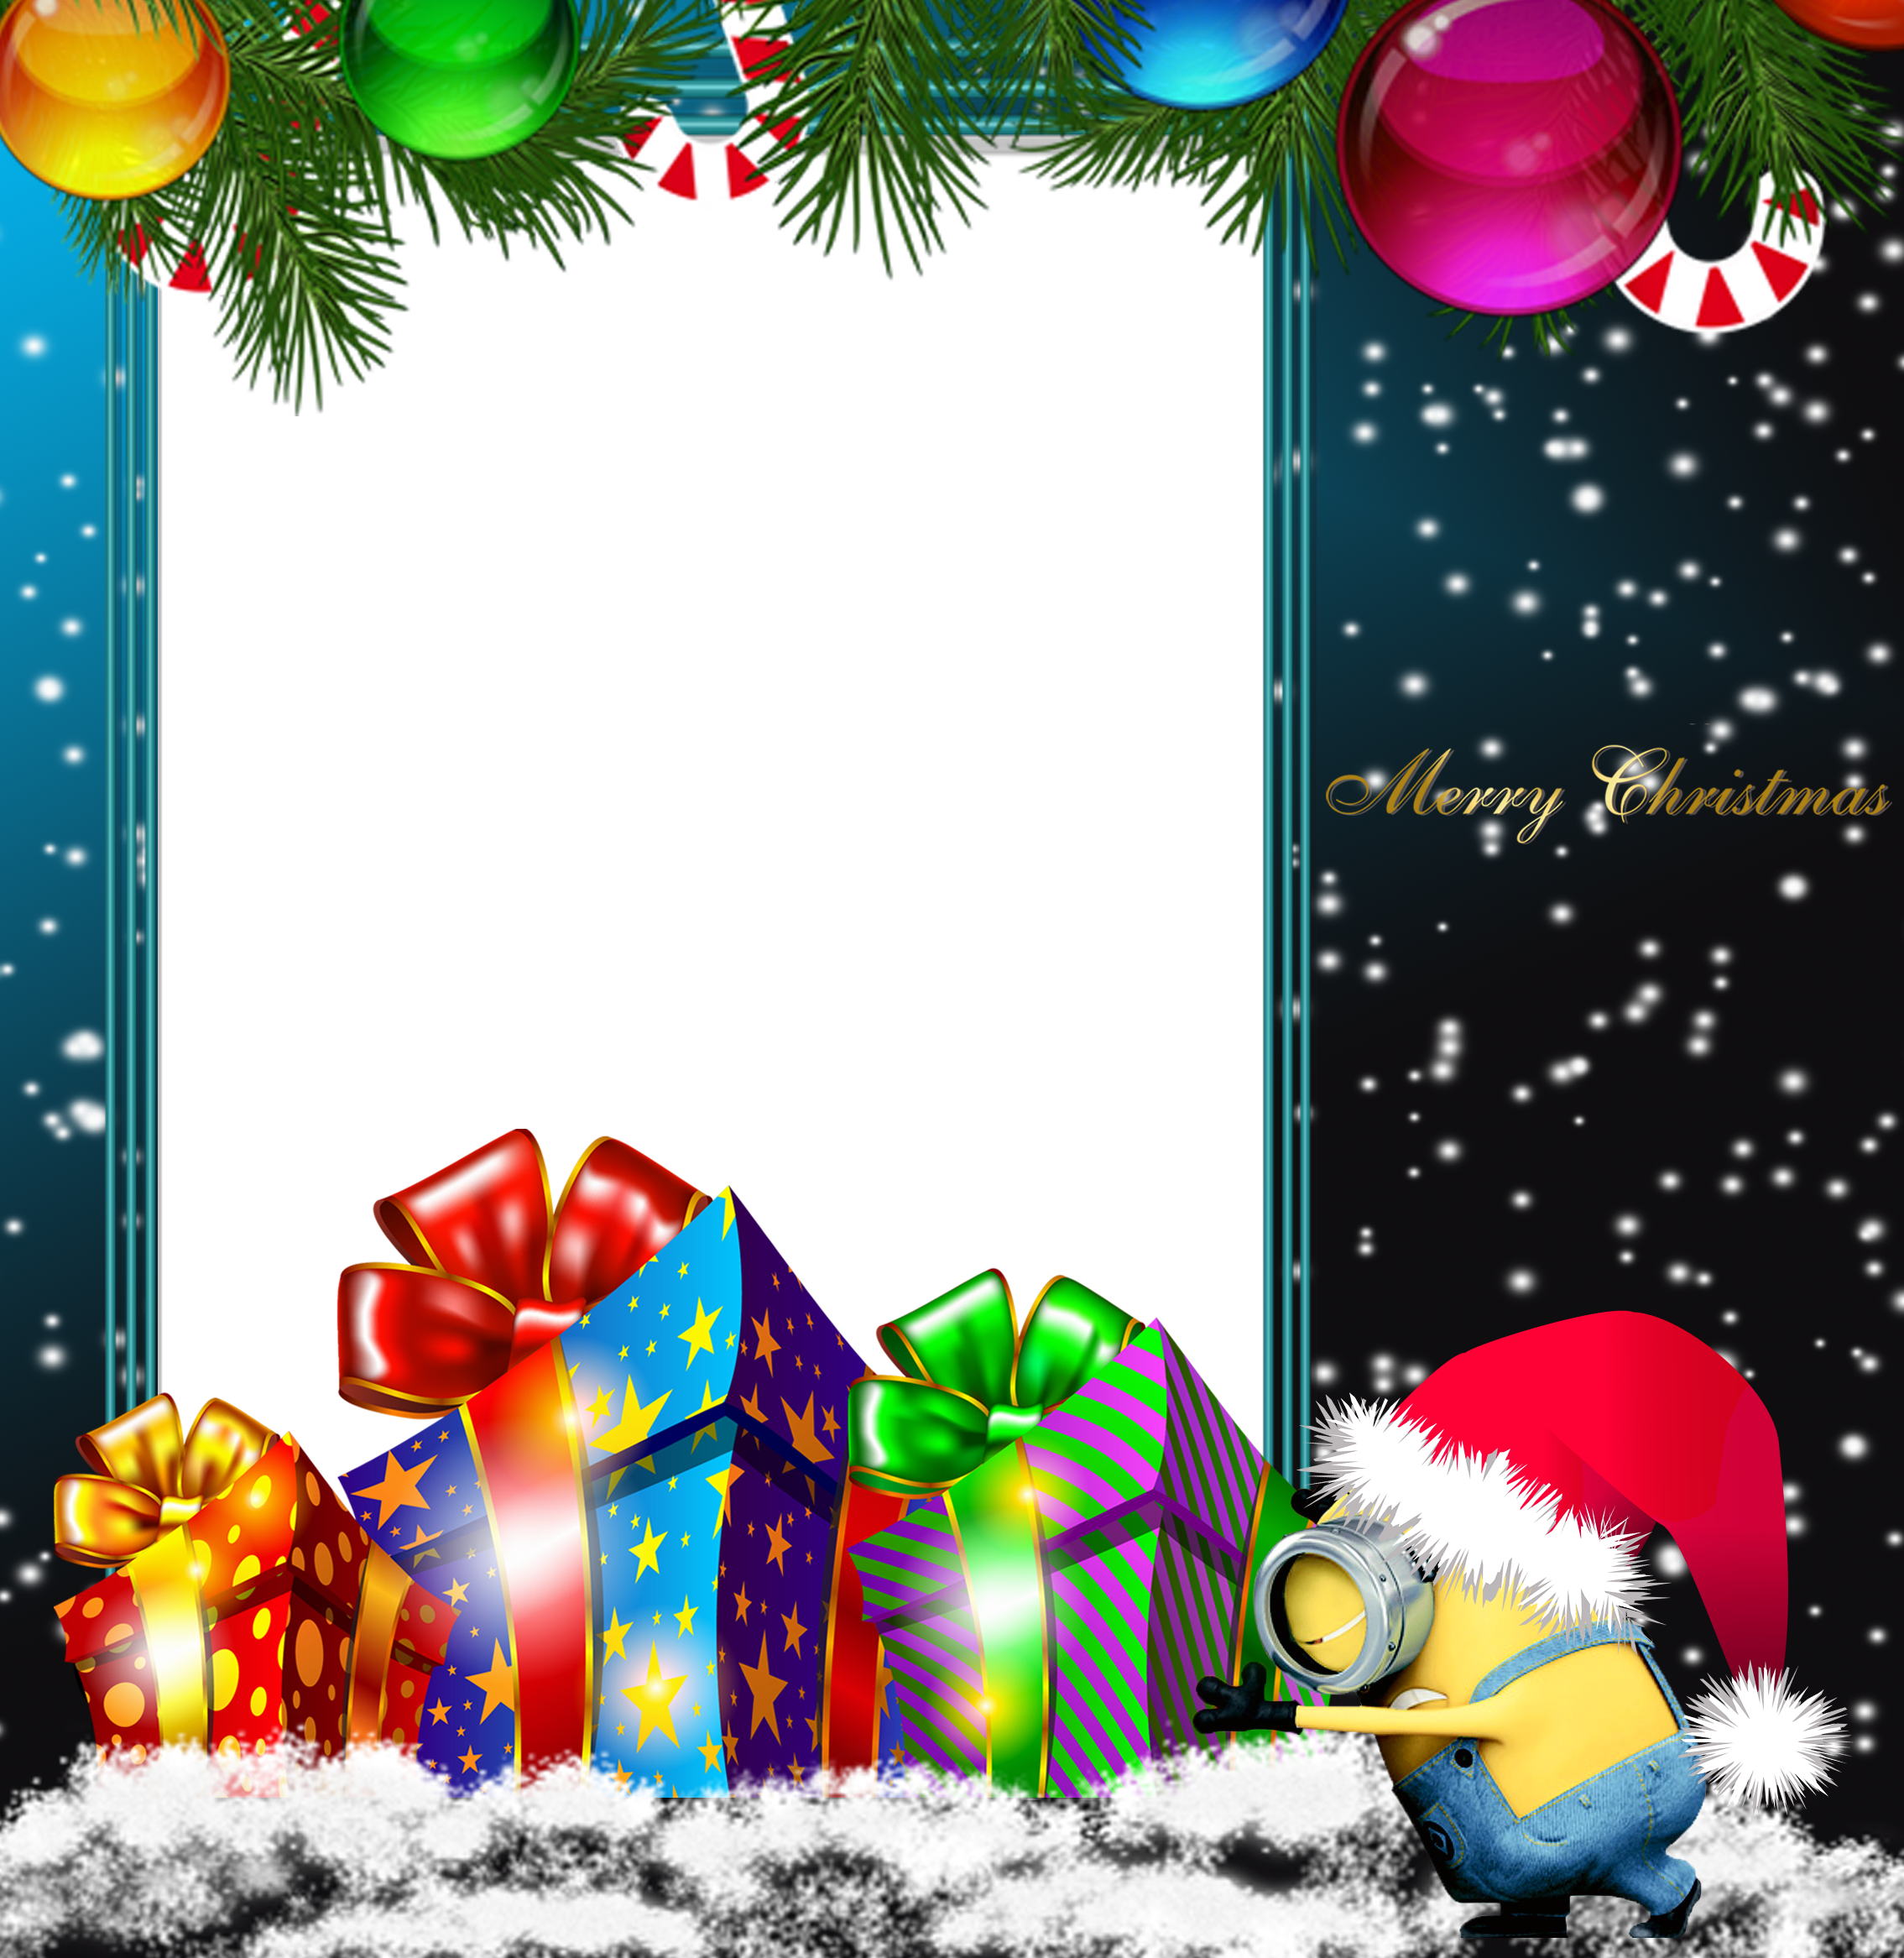 Merry Christmas PNG Minion Photo Frame.